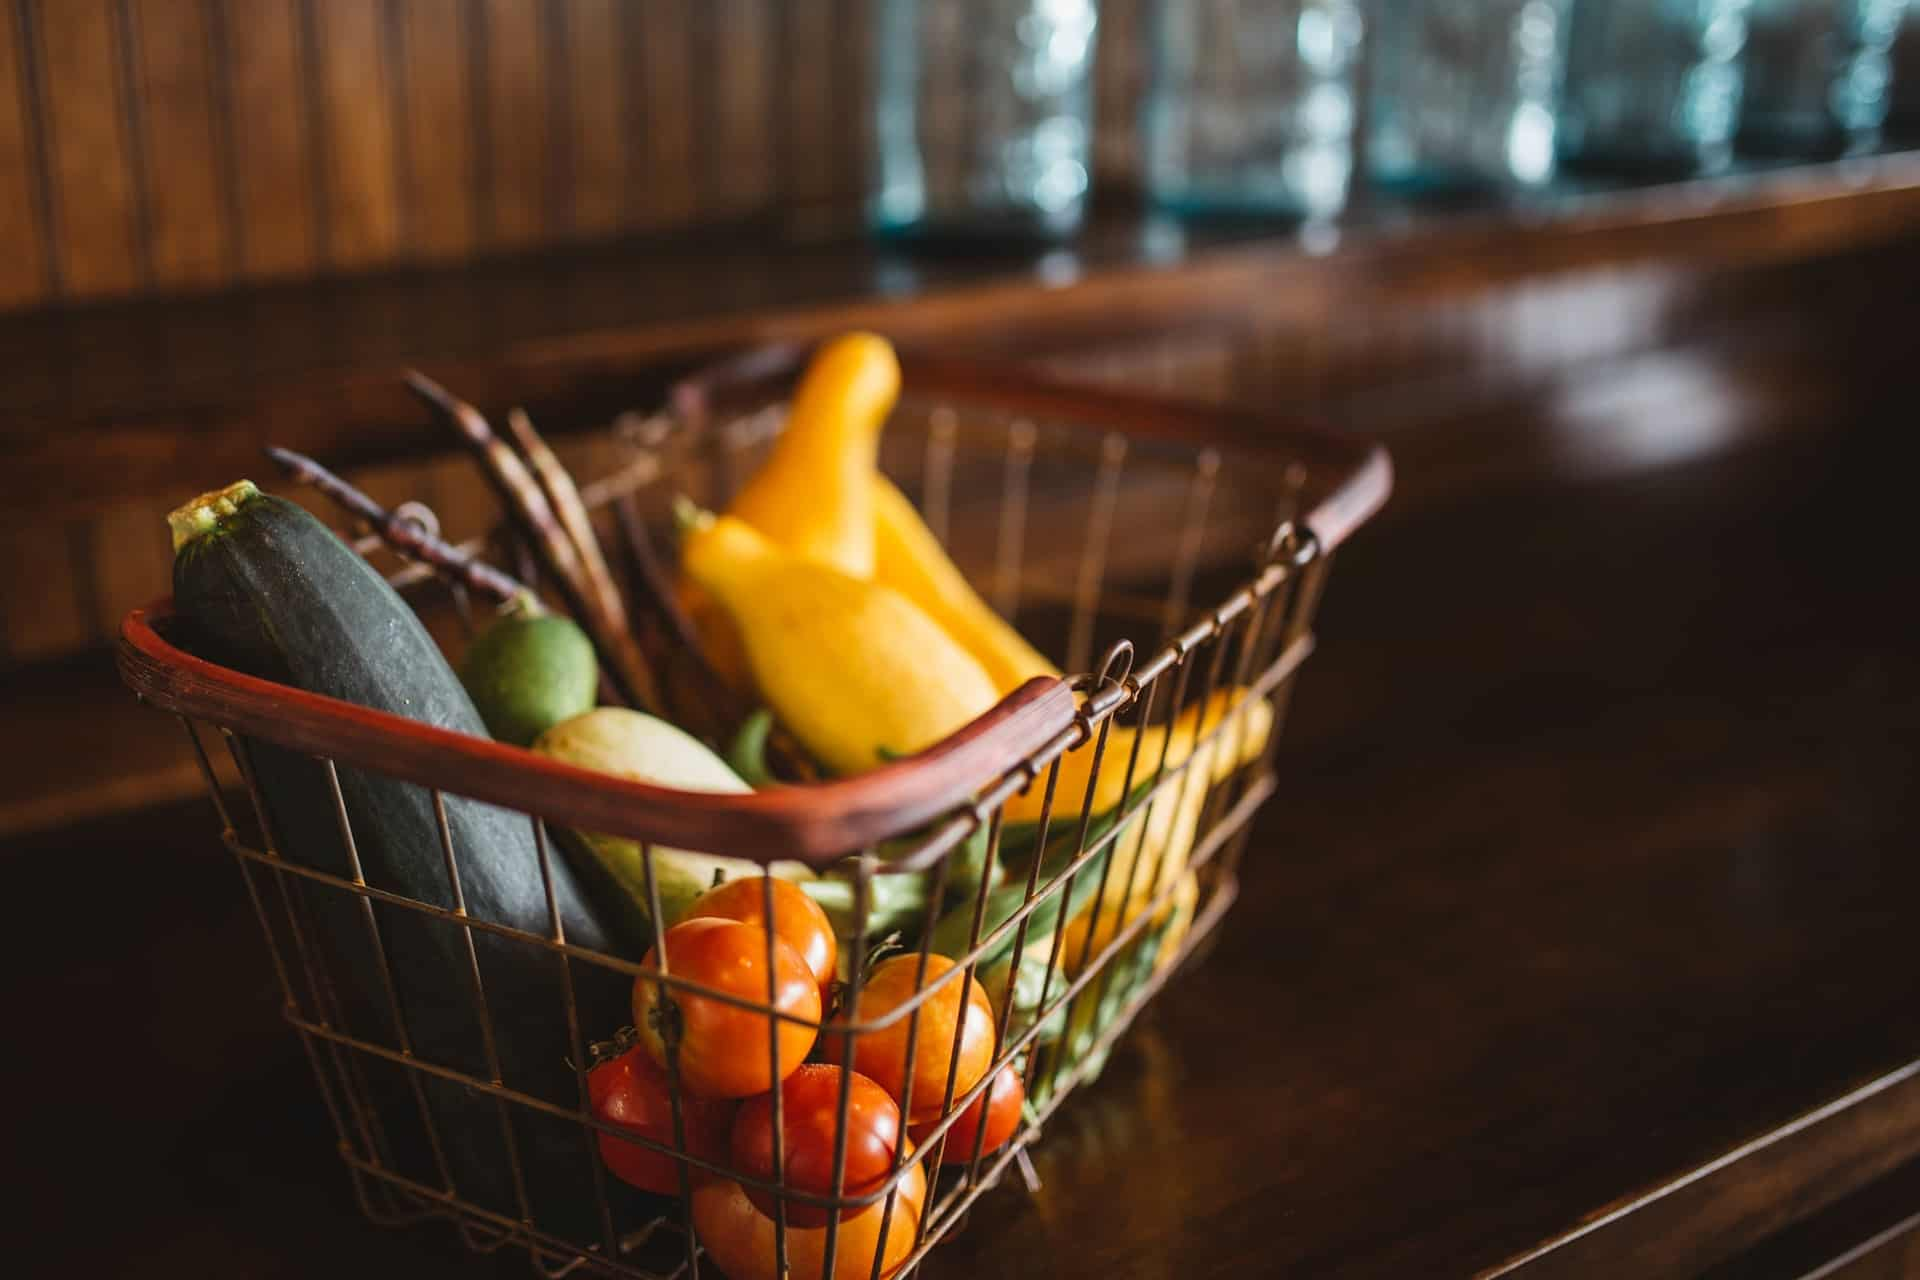 There are lots of options for getting groceries for your Disney World trip. Here is a list of your choices plus the pros and cons for each.